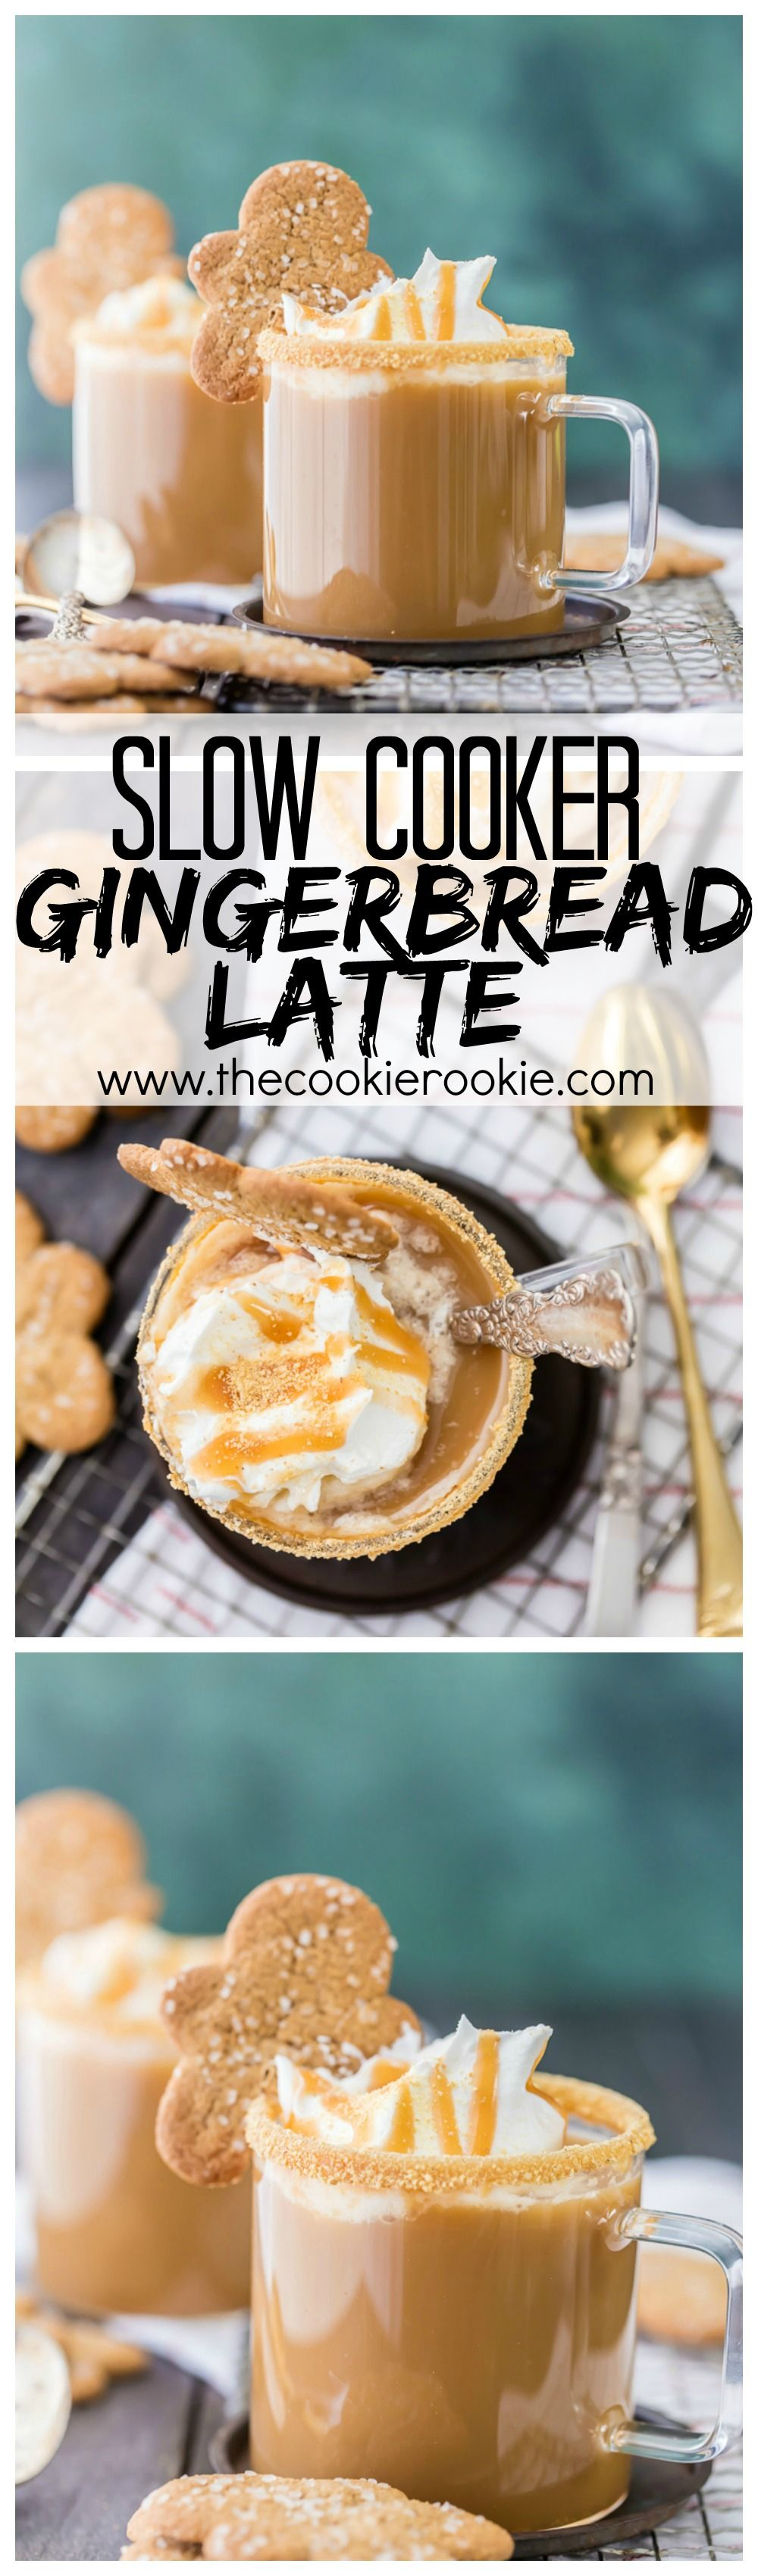 Slow Cooker Gingerbread Latte!! Easy is best...and these are best ...